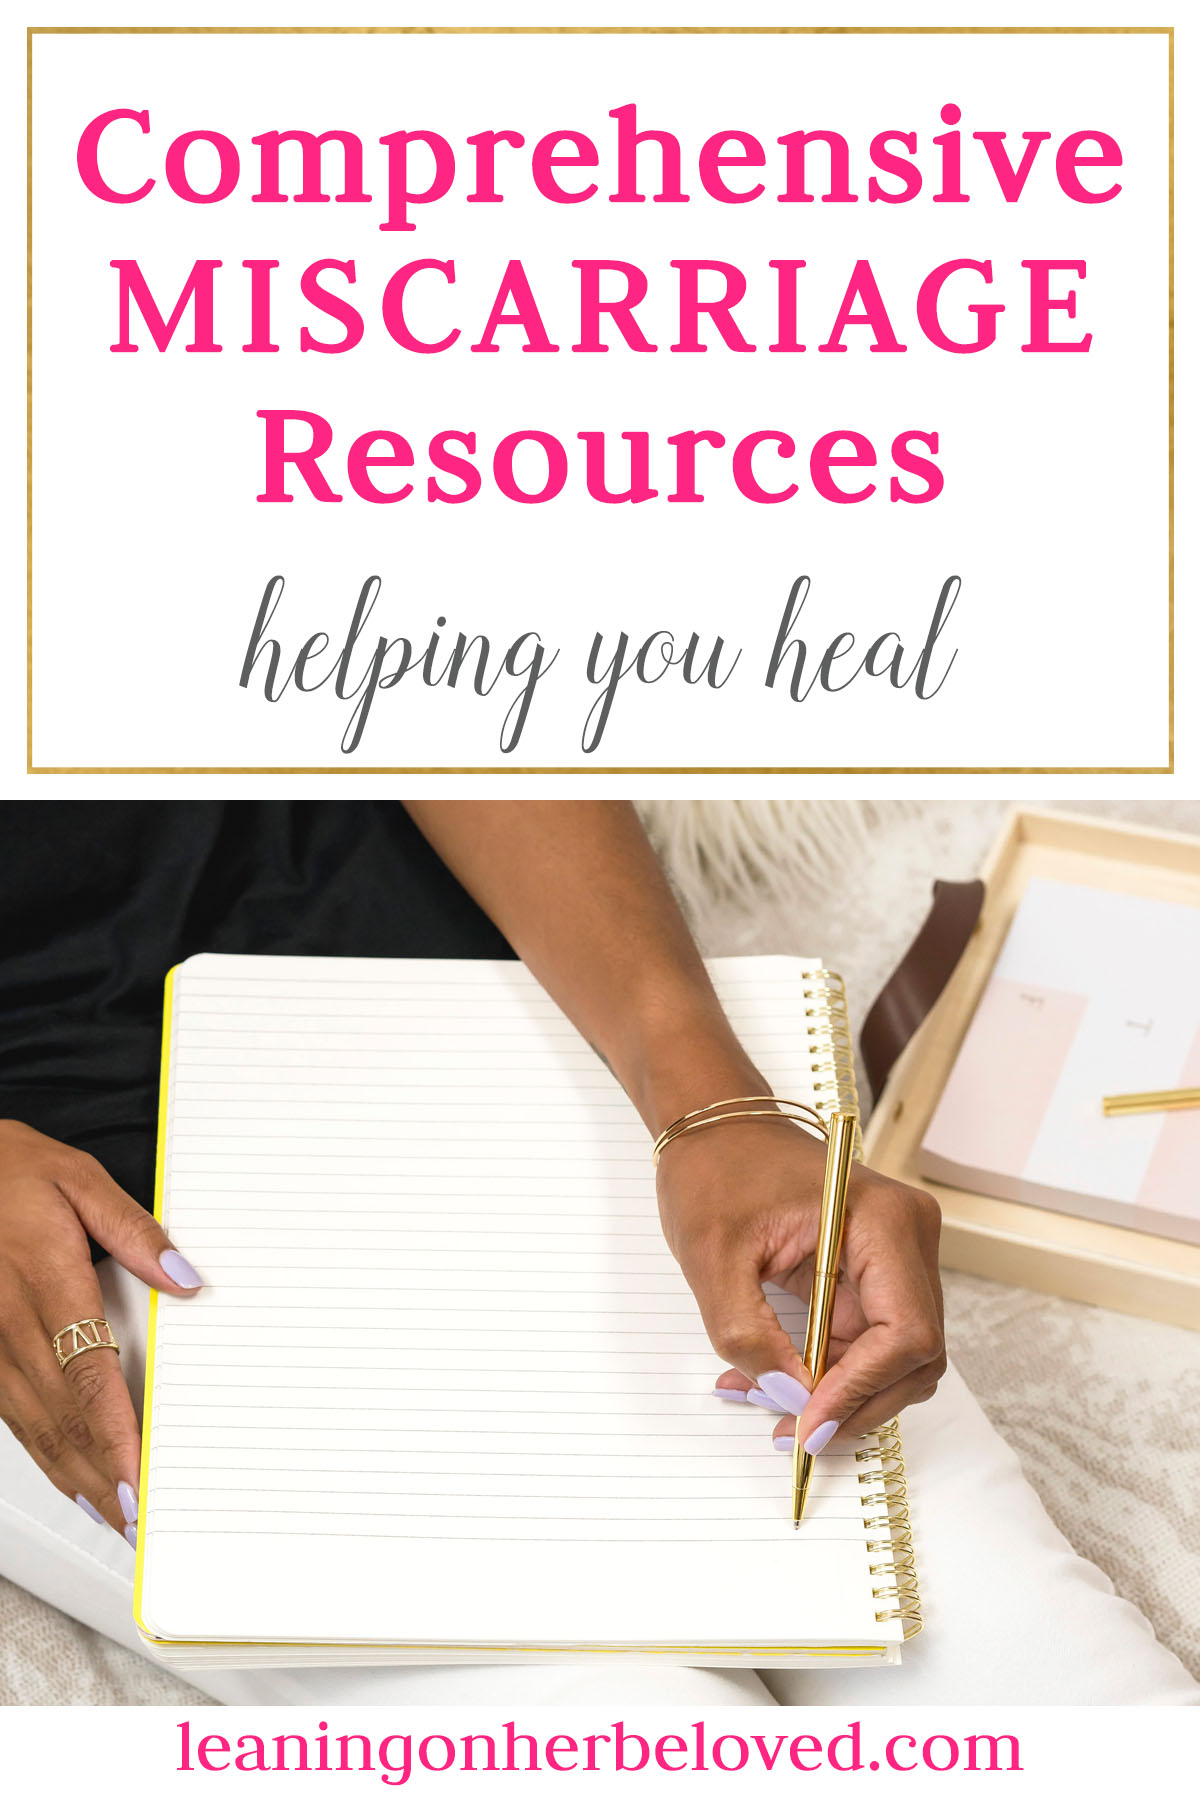 Miscarriage Resources for Moms and Friends of Moms that include books, blogs, podcasts, gift services, etc.